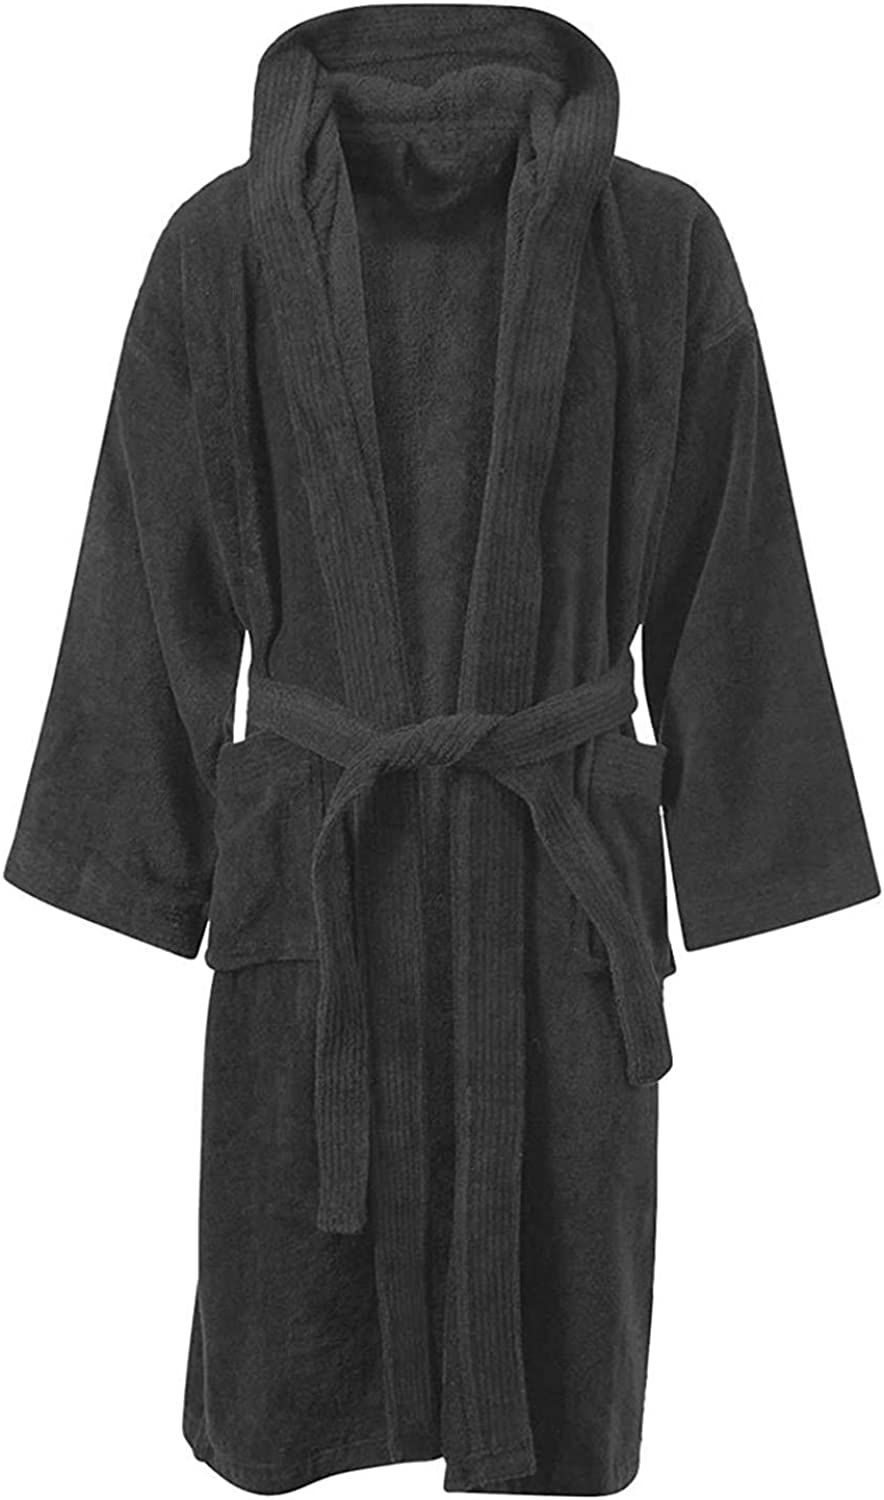 JD Linens Mens /& Ladies Bathrobe Nightwear Shawl Collar Dressing Gown 100/% Egyptian Cotton Terry Towelling Perfect for Gym Shower Spa